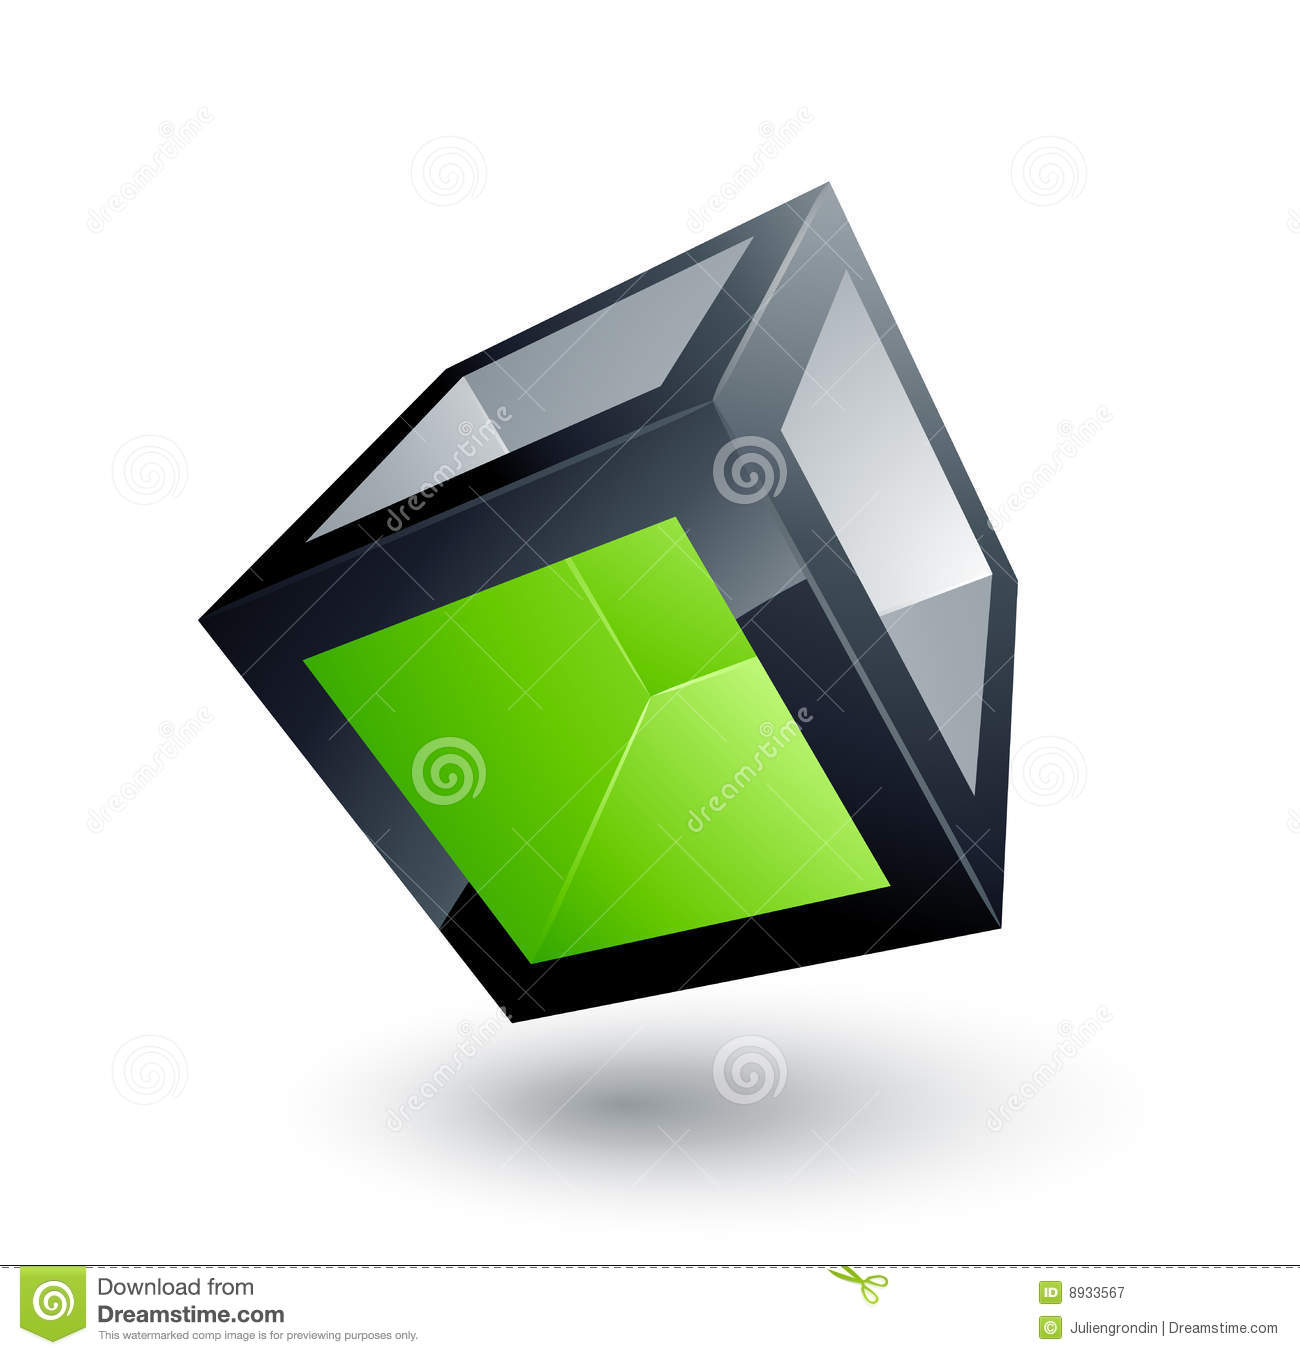 Green Cube Images - Reverse Search